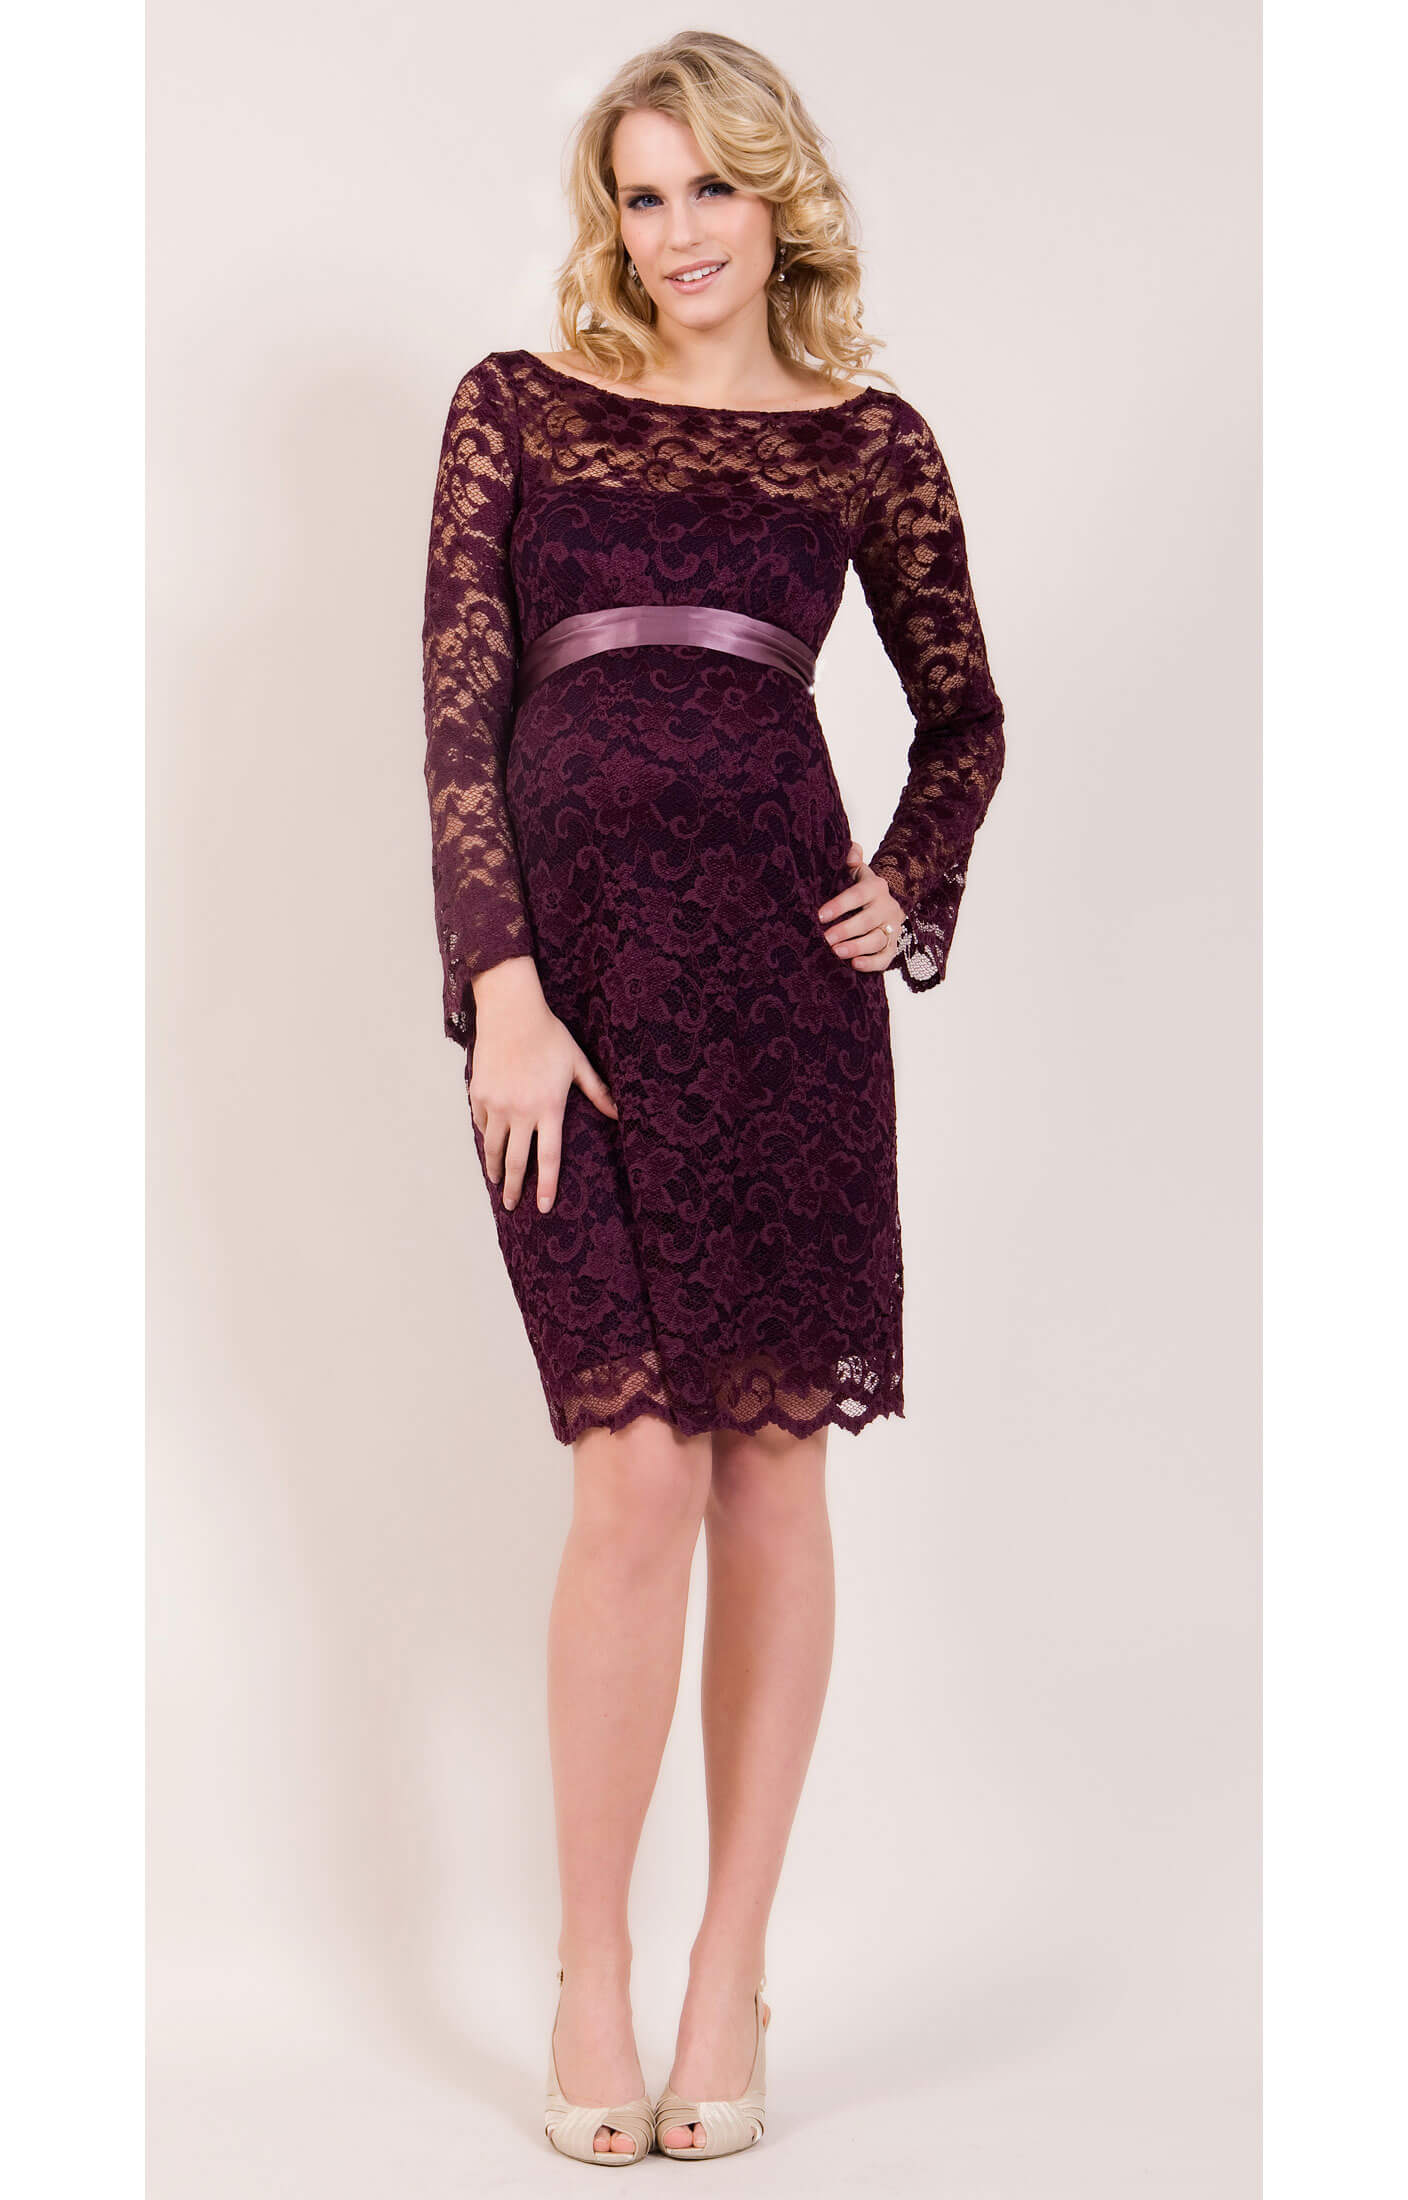 Chloe lace maternity dress claret maternity wedding dresses chloe lace maternity dress claret by tiffany rose ombrellifo Gallery